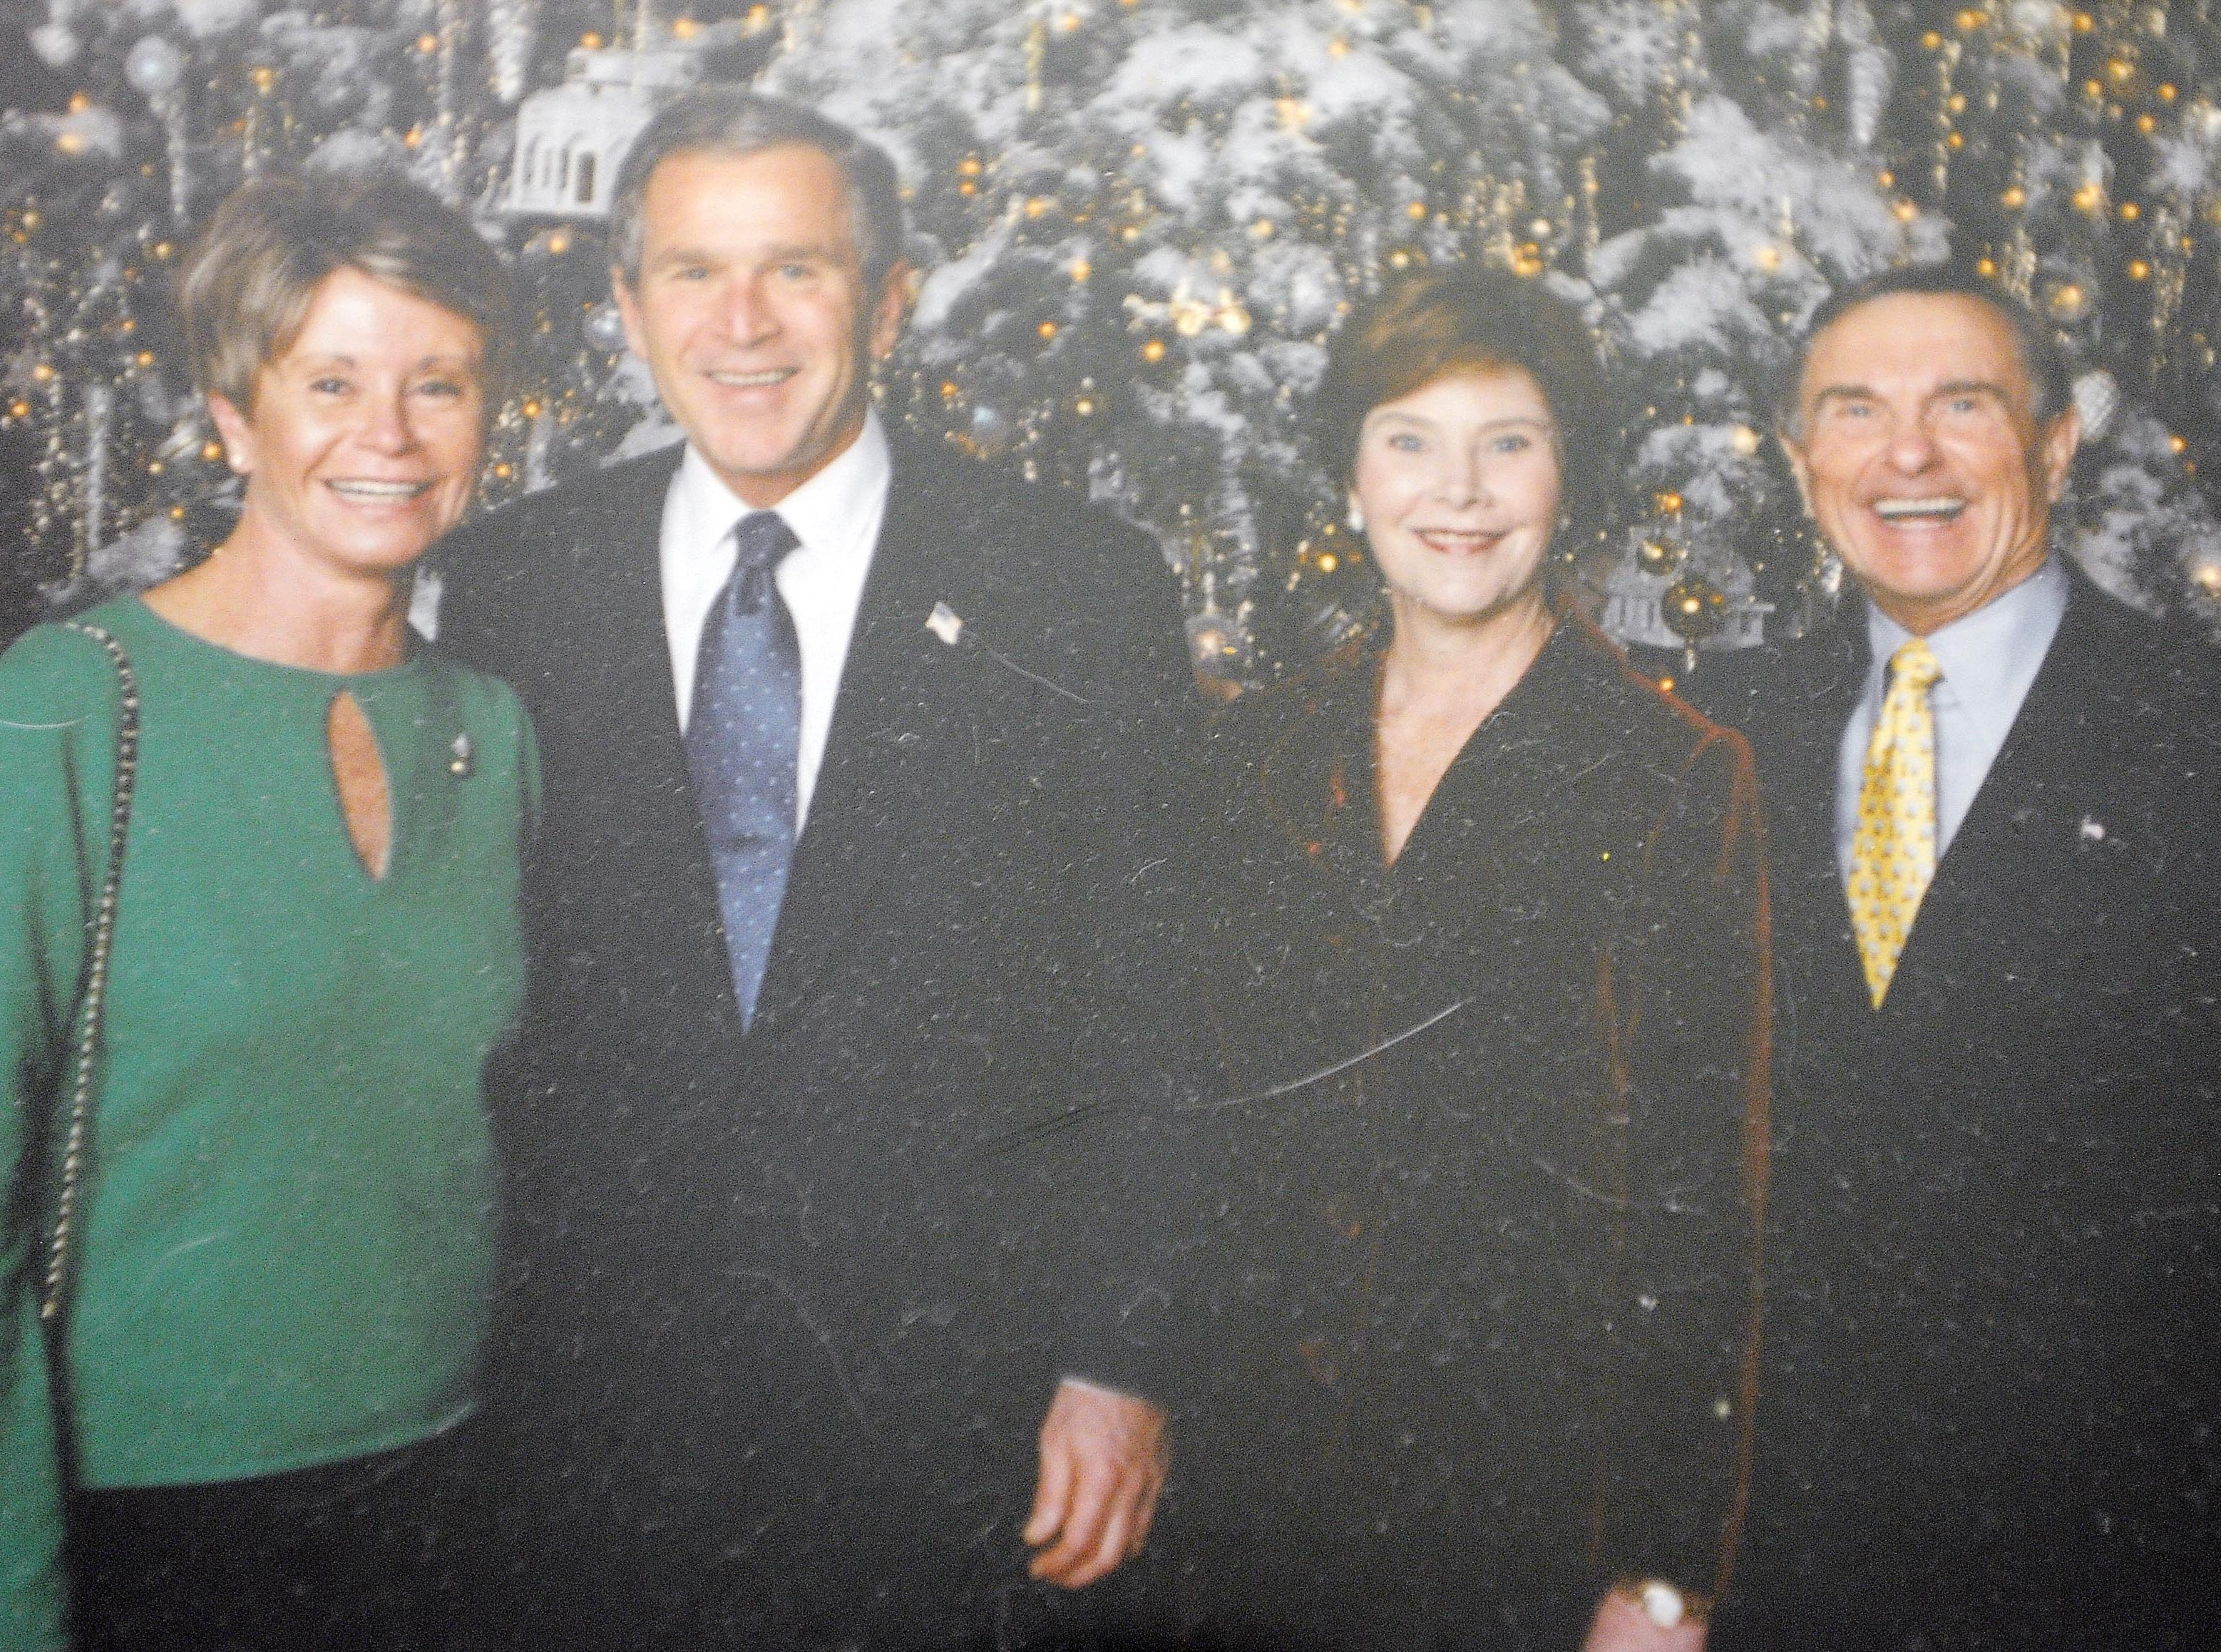 Colleen Conway-Welch, President and Laura Bush and Ted Welch in a family picture.  Submitted by family